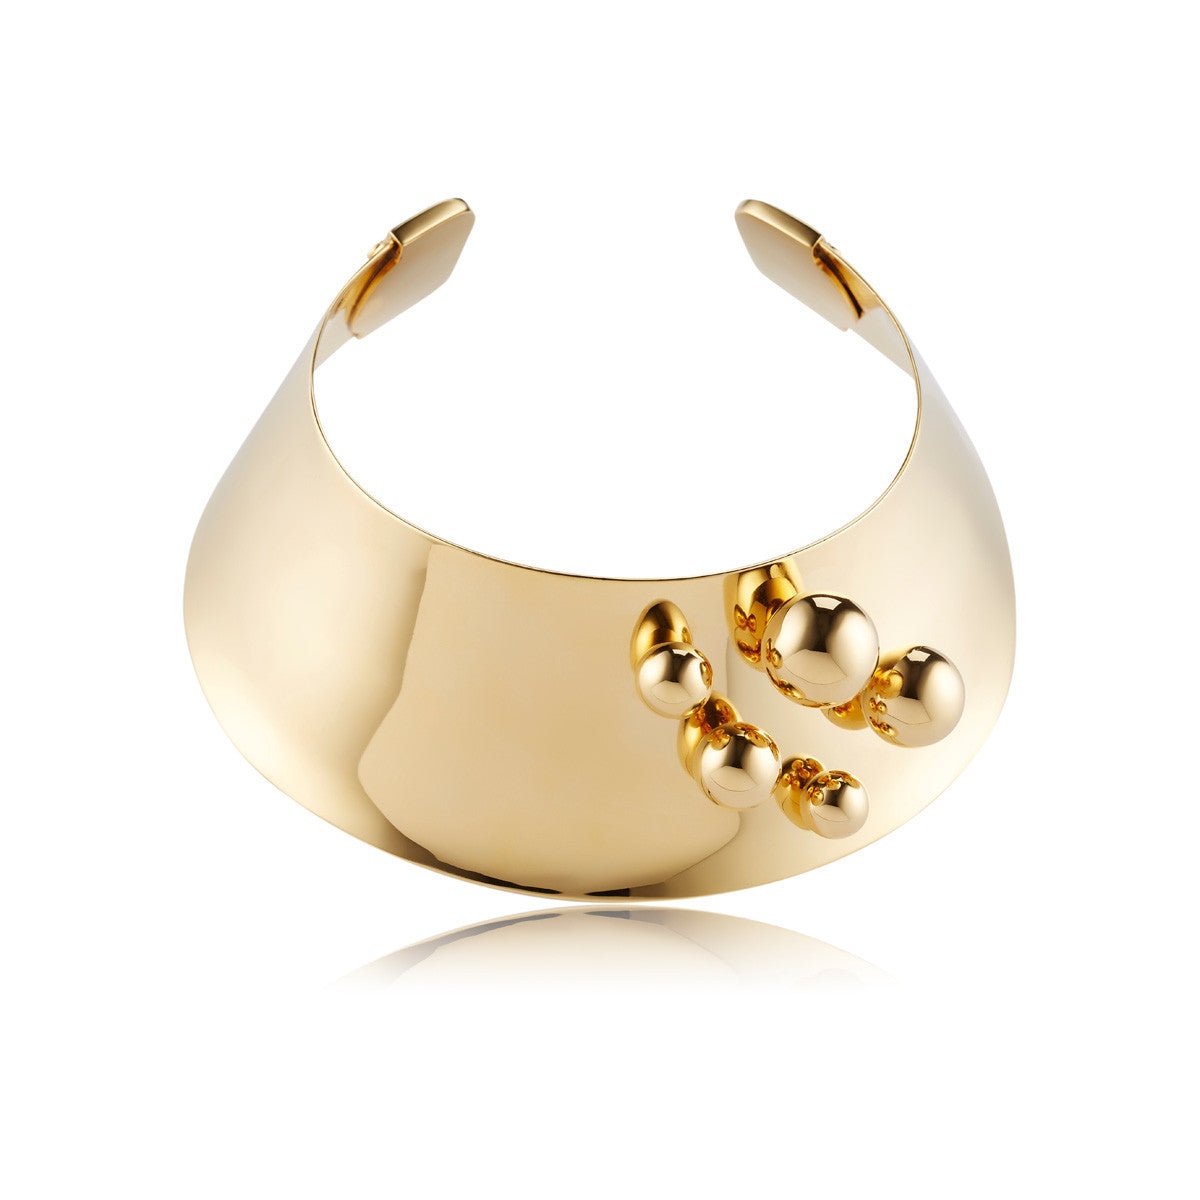 Solid brass, 18K gold plated Stellatus neck cuff is adorned with a cluster of gleaming spheres – front